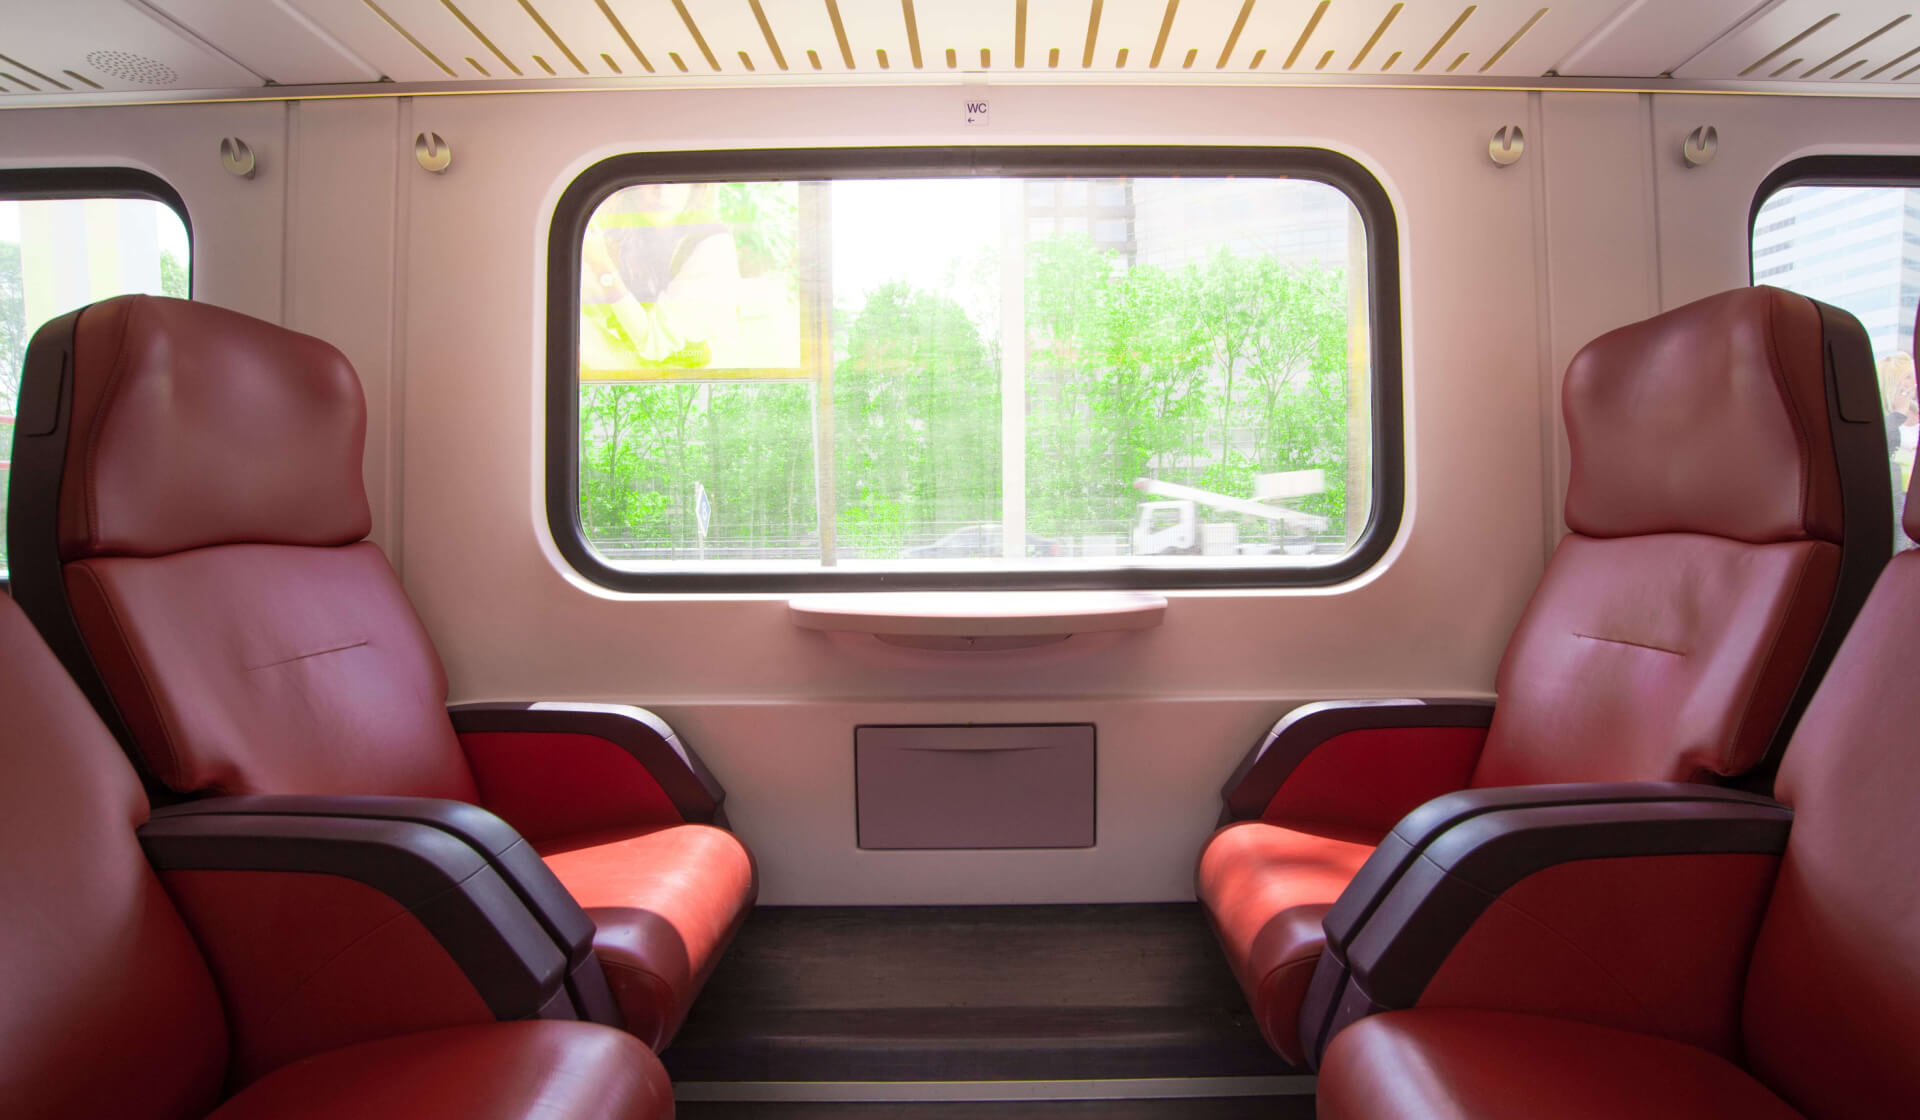 Four large, empty, red leather seats facing each other on a train